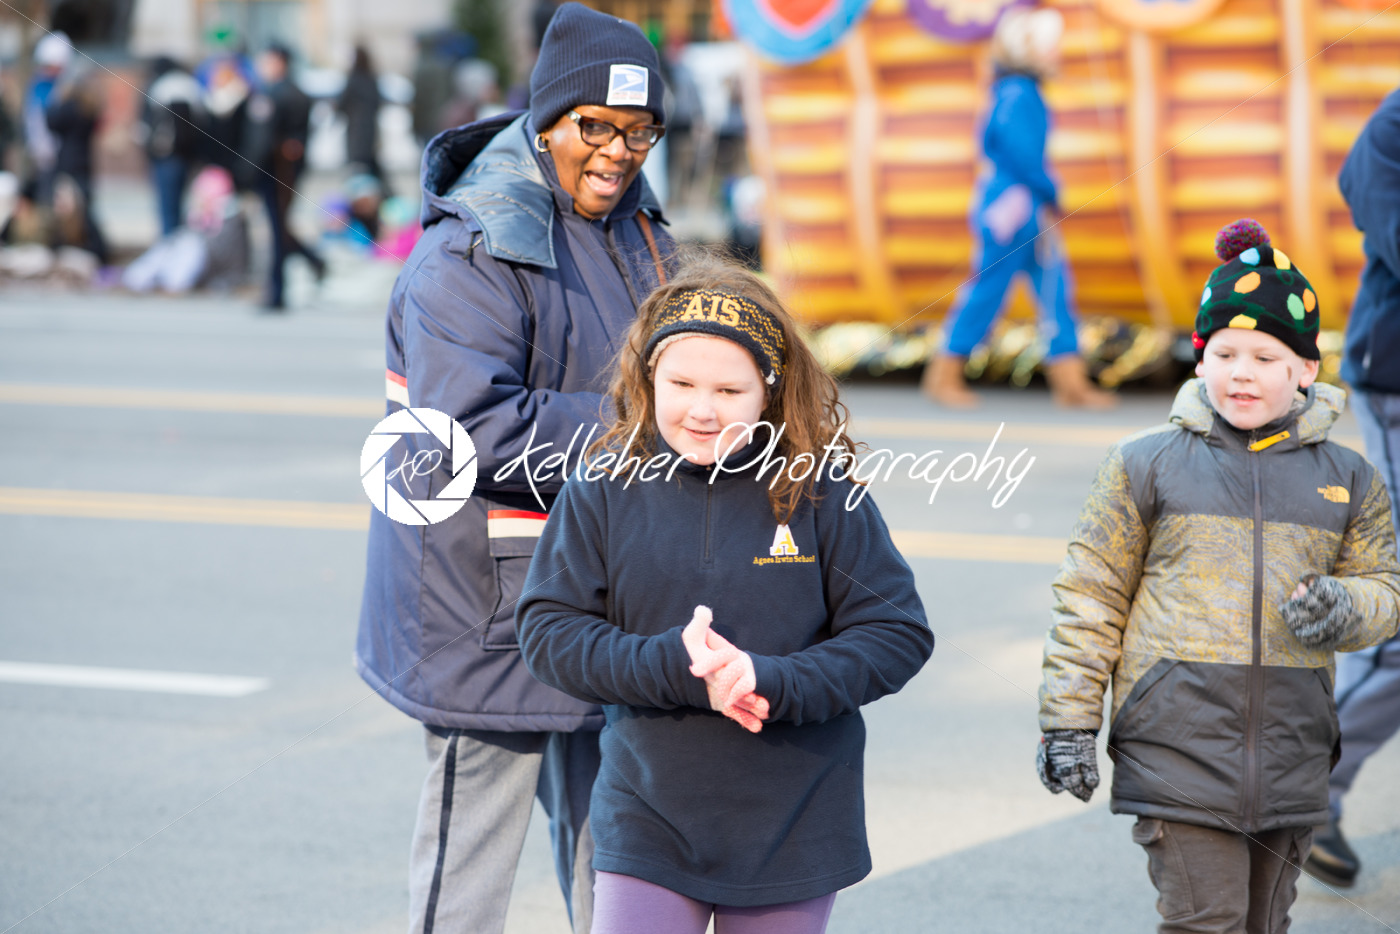 Philadelphia, PA – November 23, 2017: Annual Thanksgiving Day Parade in Center City Philadelphia, PA - Kelleher Photography Store